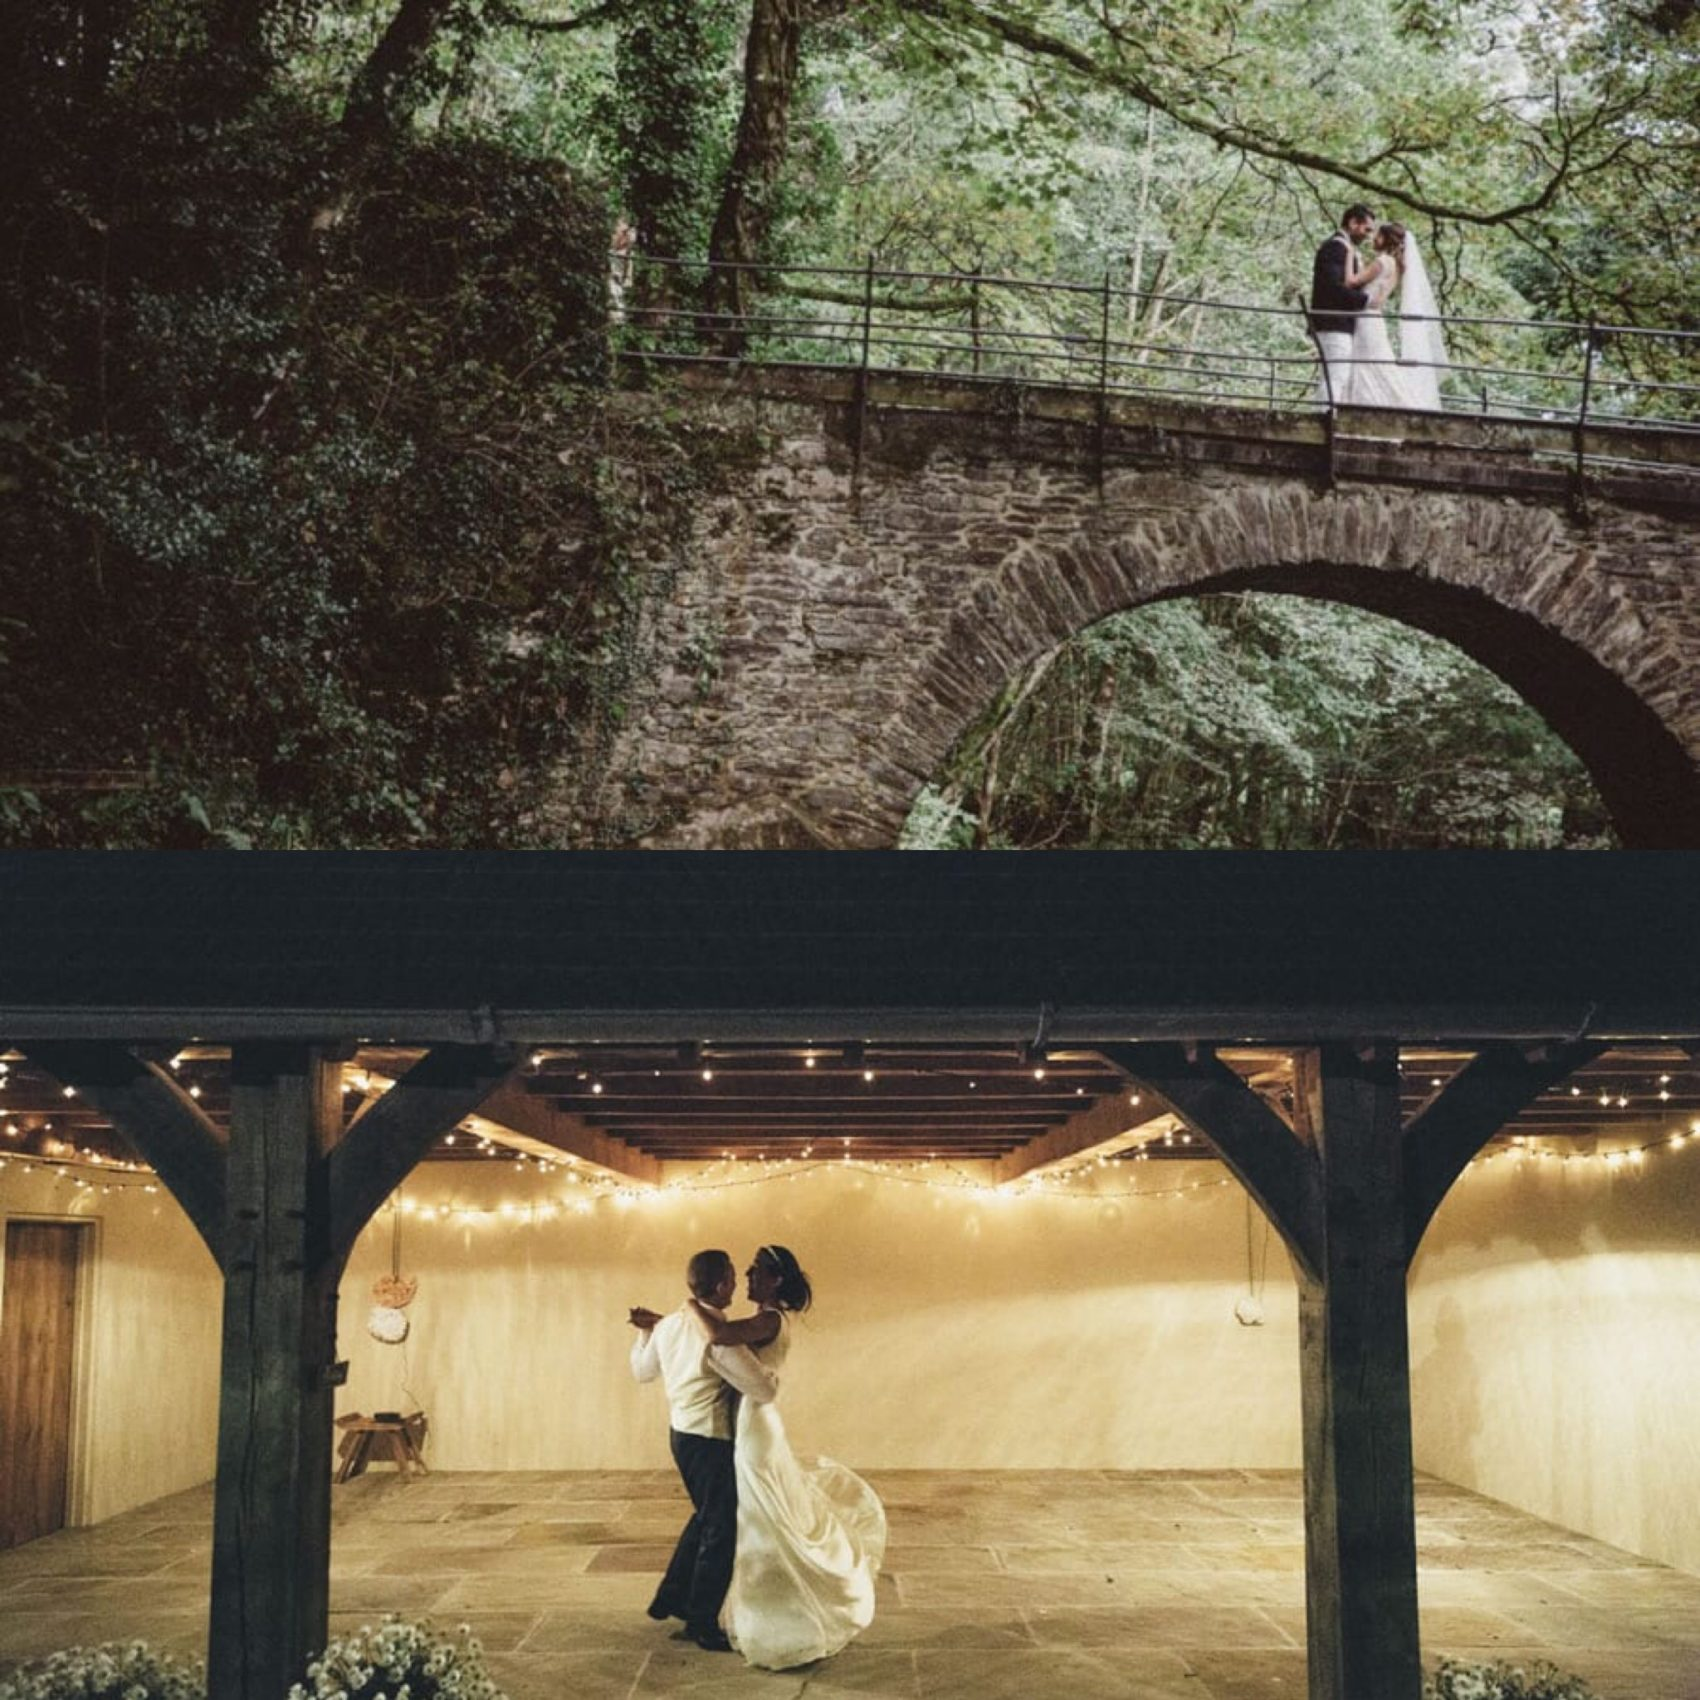 bride & groom, ever after, dancing, bridge, barn, lower grenofen, woodland, greenery, trees, fairy lights, love, happiness, river